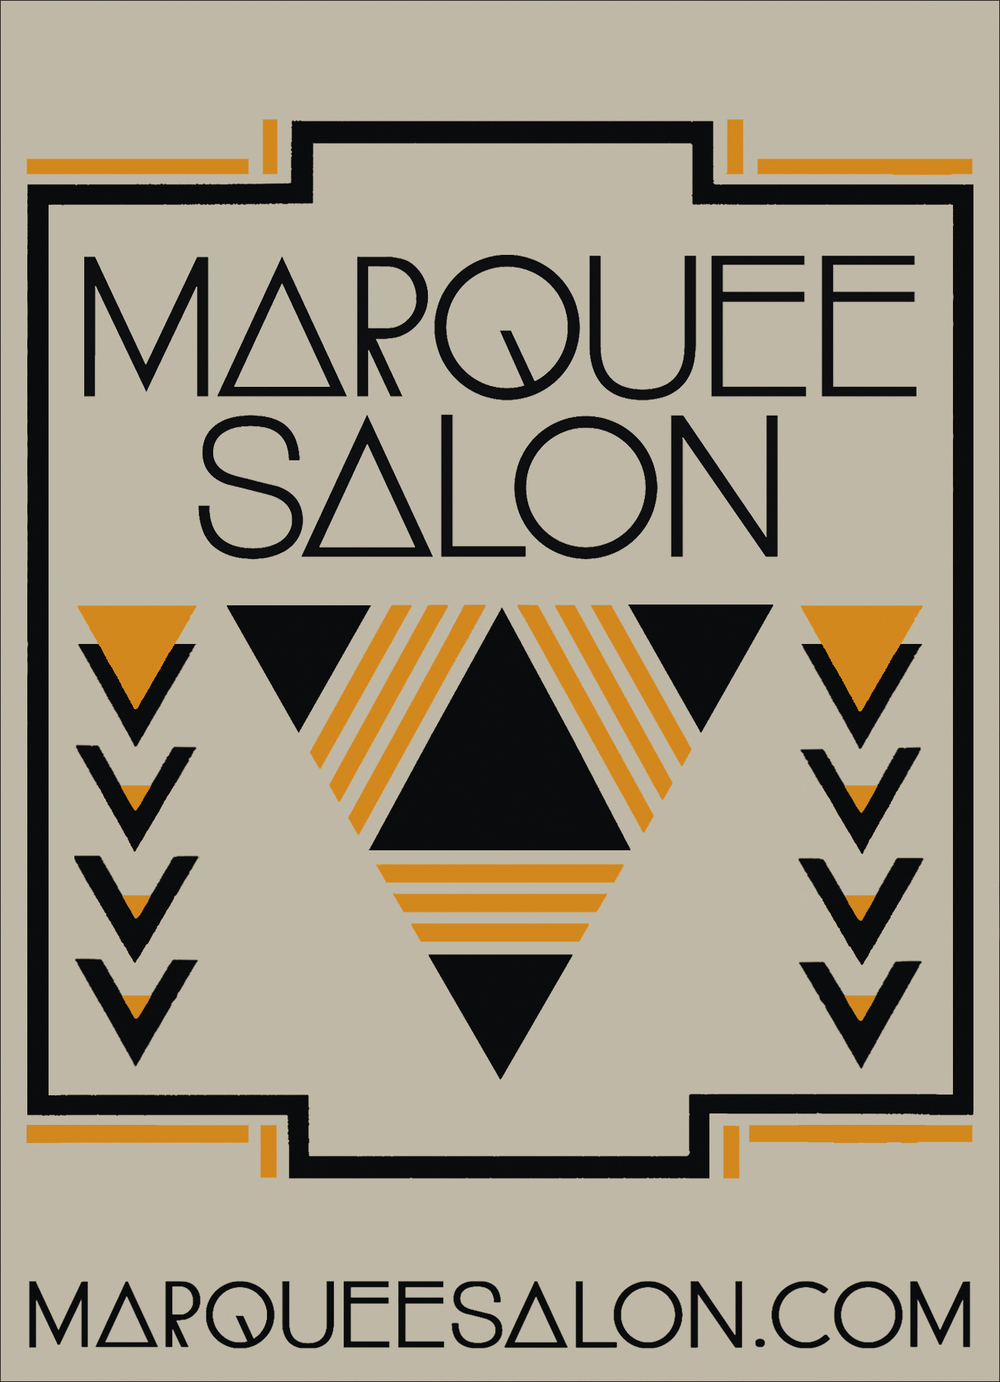 STARCADE DESIGNS FOR MARQUEE SALON / SIGNAGE DESIGN FOR COPPER LEAF APPLICATION / ©MARQUEE SALON